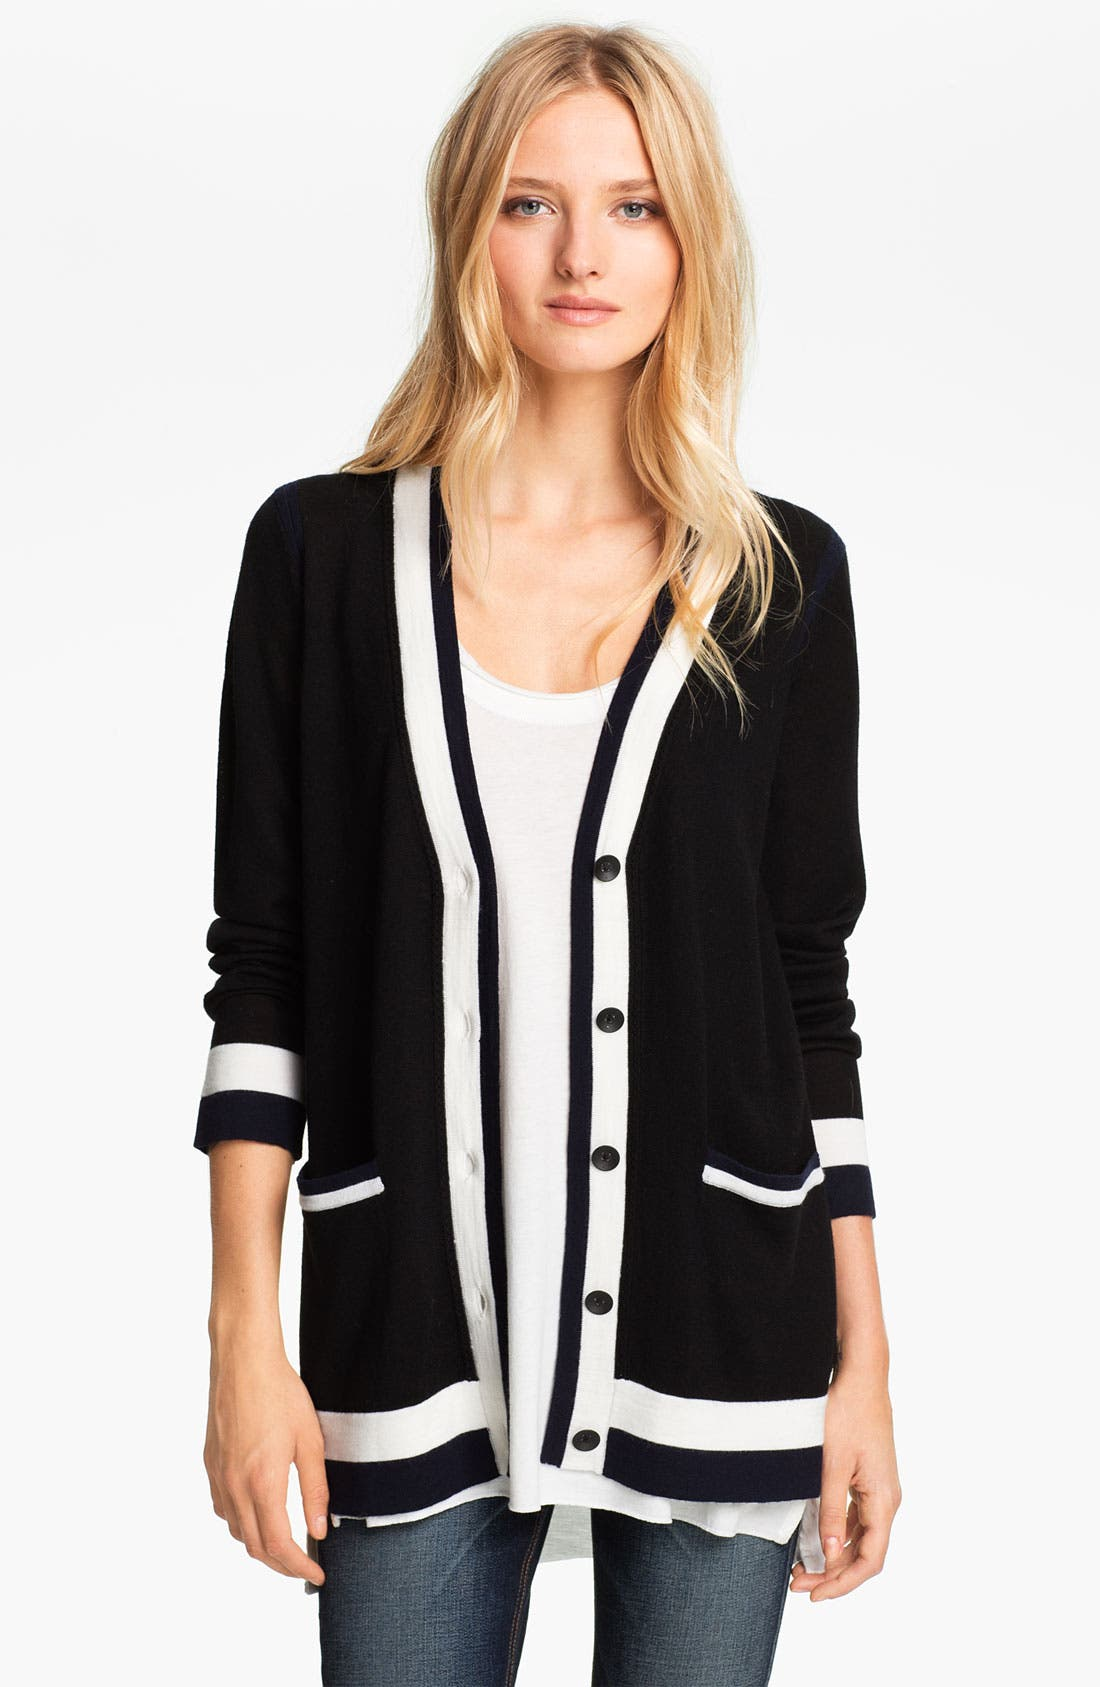 Alternate Image 1 Selected - rag & bone 'Prymm' Merino Wool Cardigan